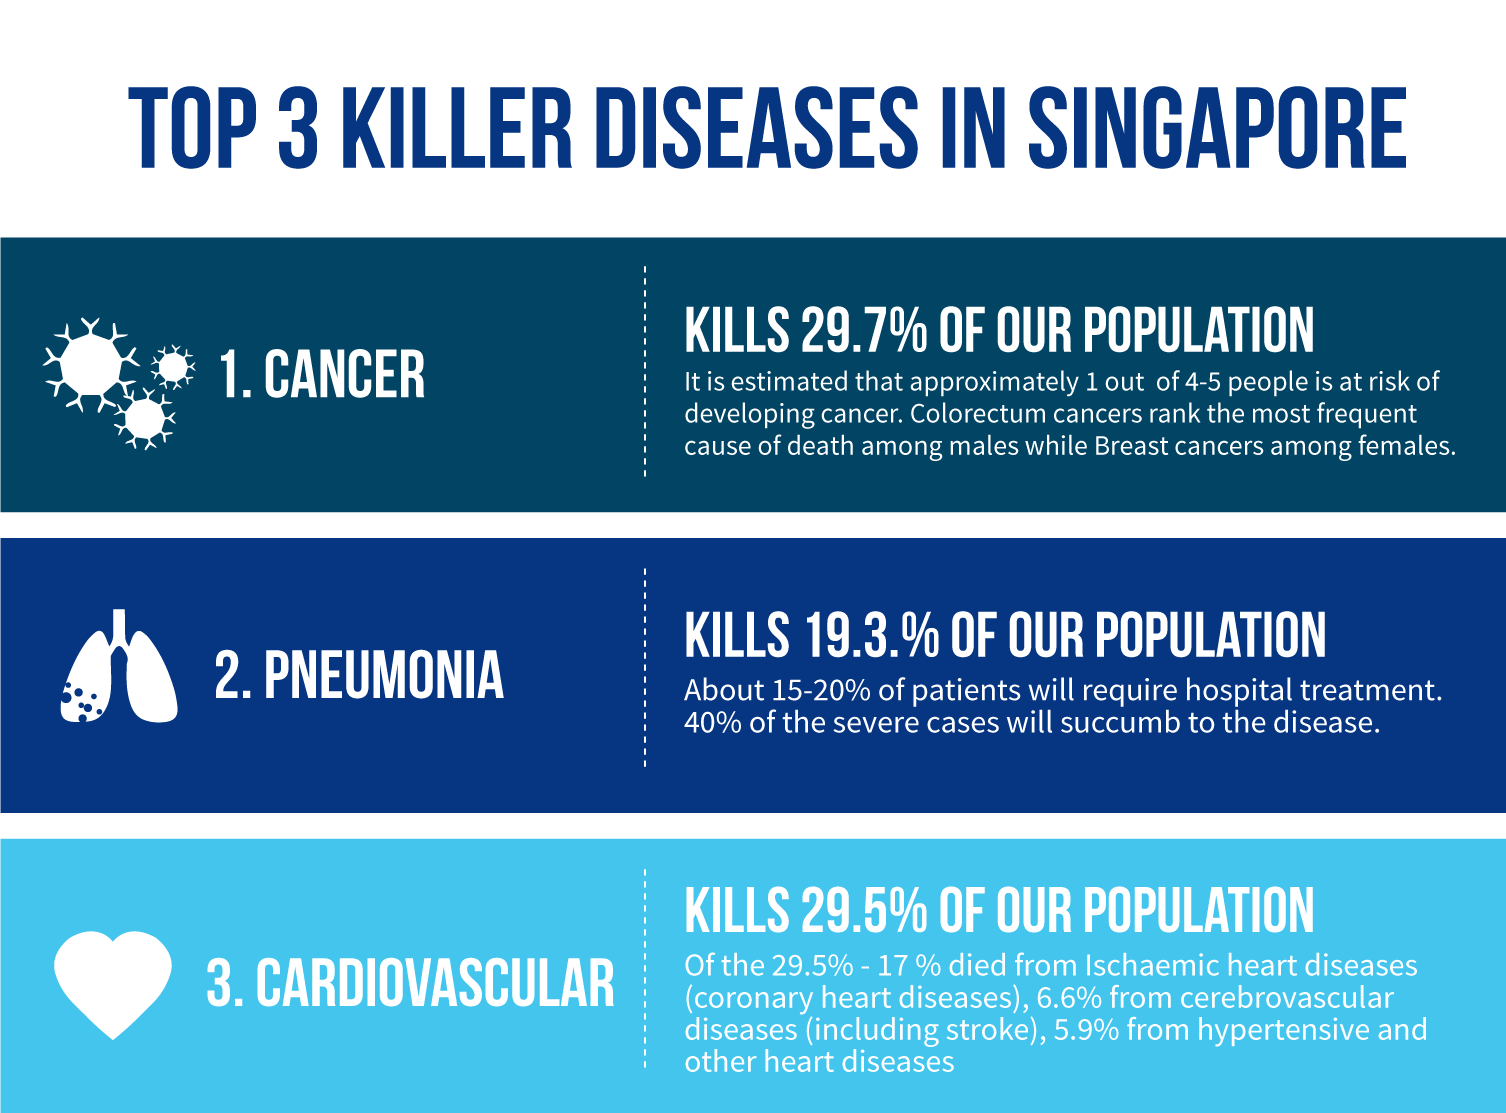 Top 3 Killer Diseases in Singapore